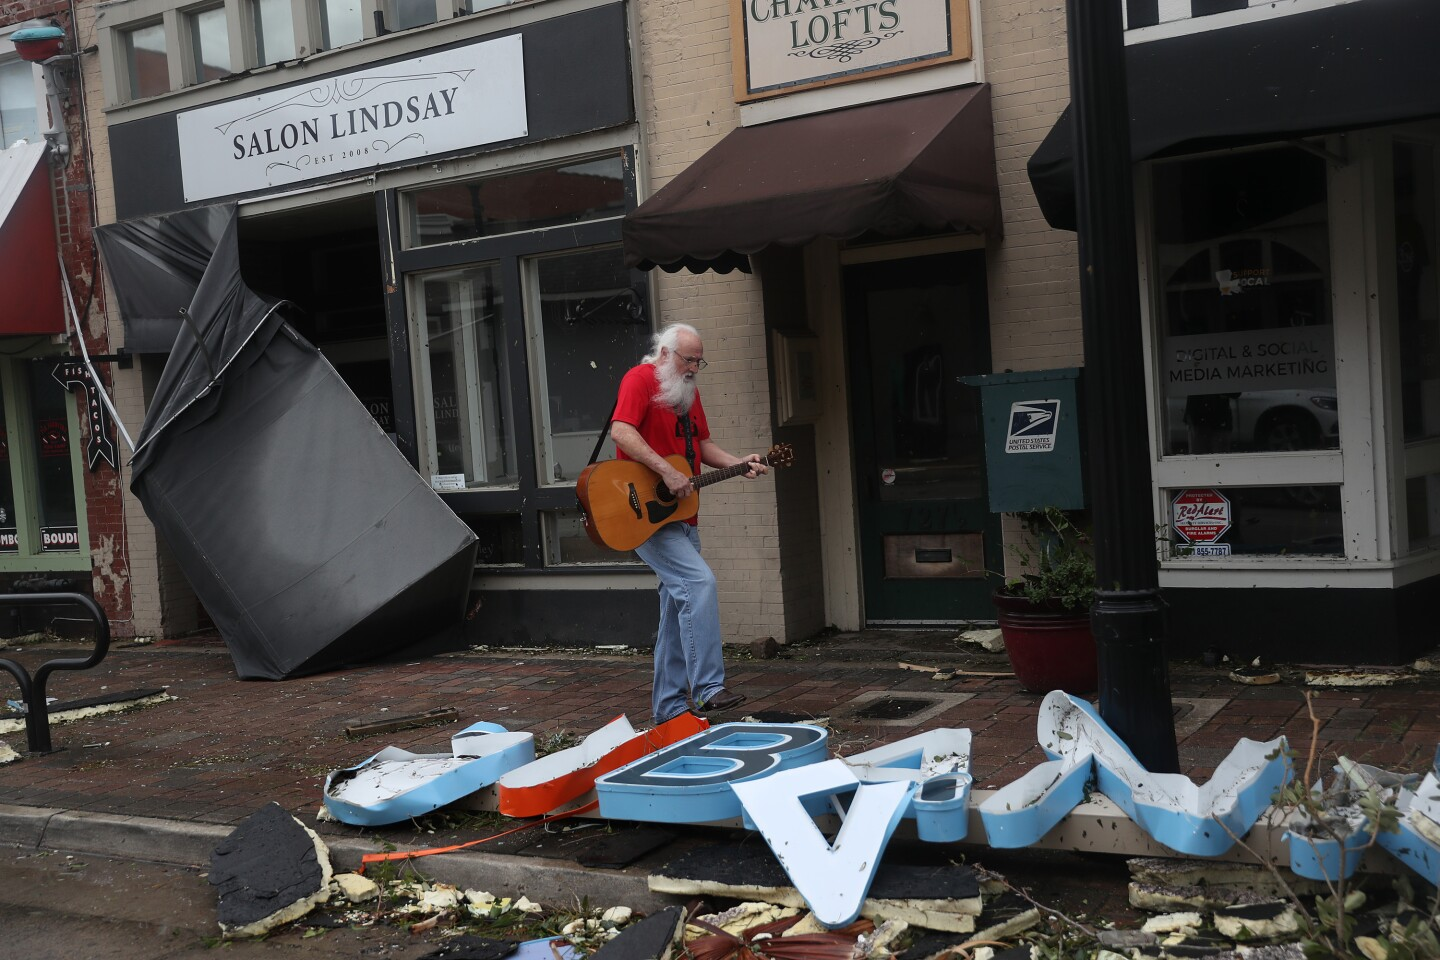 LAKE CHARLES, LOUISIANA - AUGUST 27: Mitch PIckering plays his guitar while walking through the downtown area after Hurricane Laura passed through on August 27, 2020 in Lake Charles, Louisiana . The hurricane hit with powerful winds causing extensive damage to the city. (Photo by Joe Raedle/Getty Images)